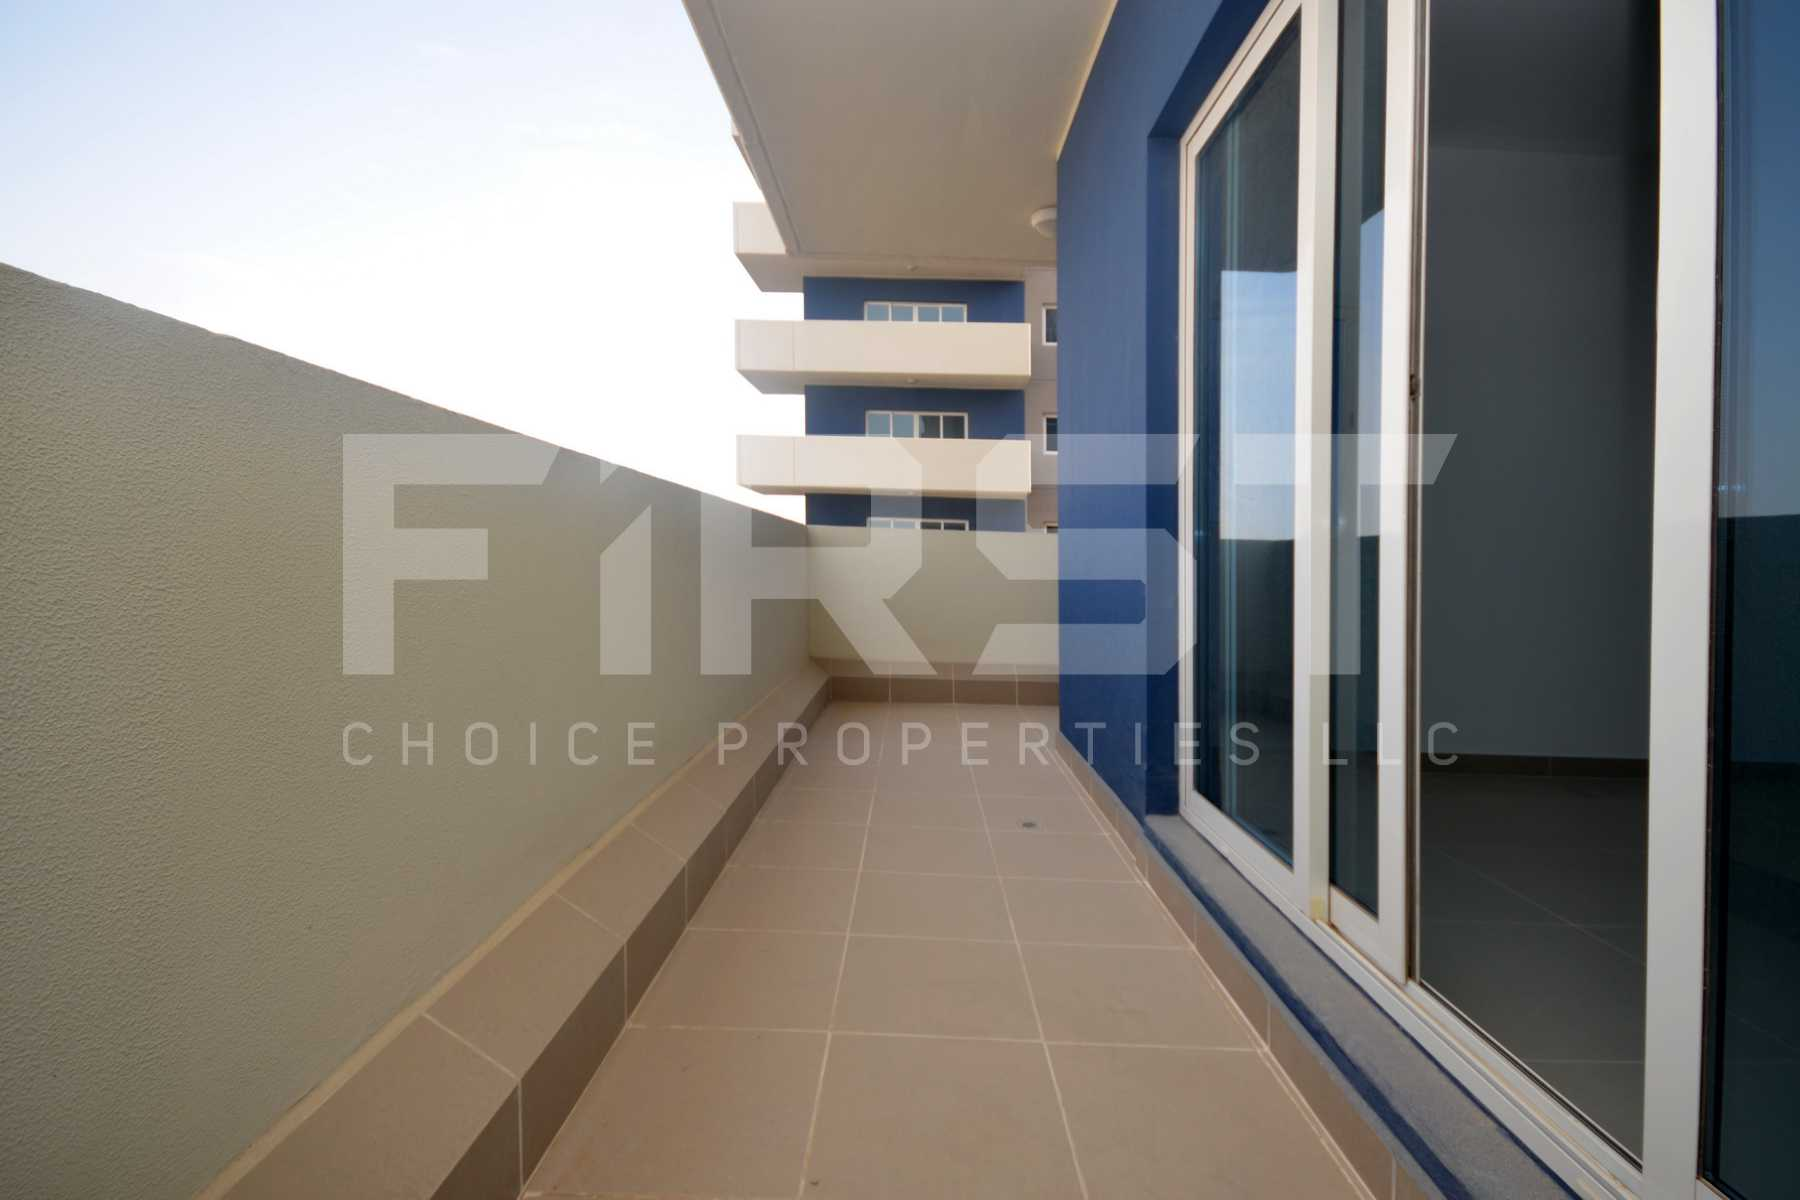 Internal Photo of 3 Bedroom Apartment Type D Open Kitchen in Al Reef Downtown Al Reef Abu Dhabi UAE 145sq.m 1560 sq.ft (19).jpg